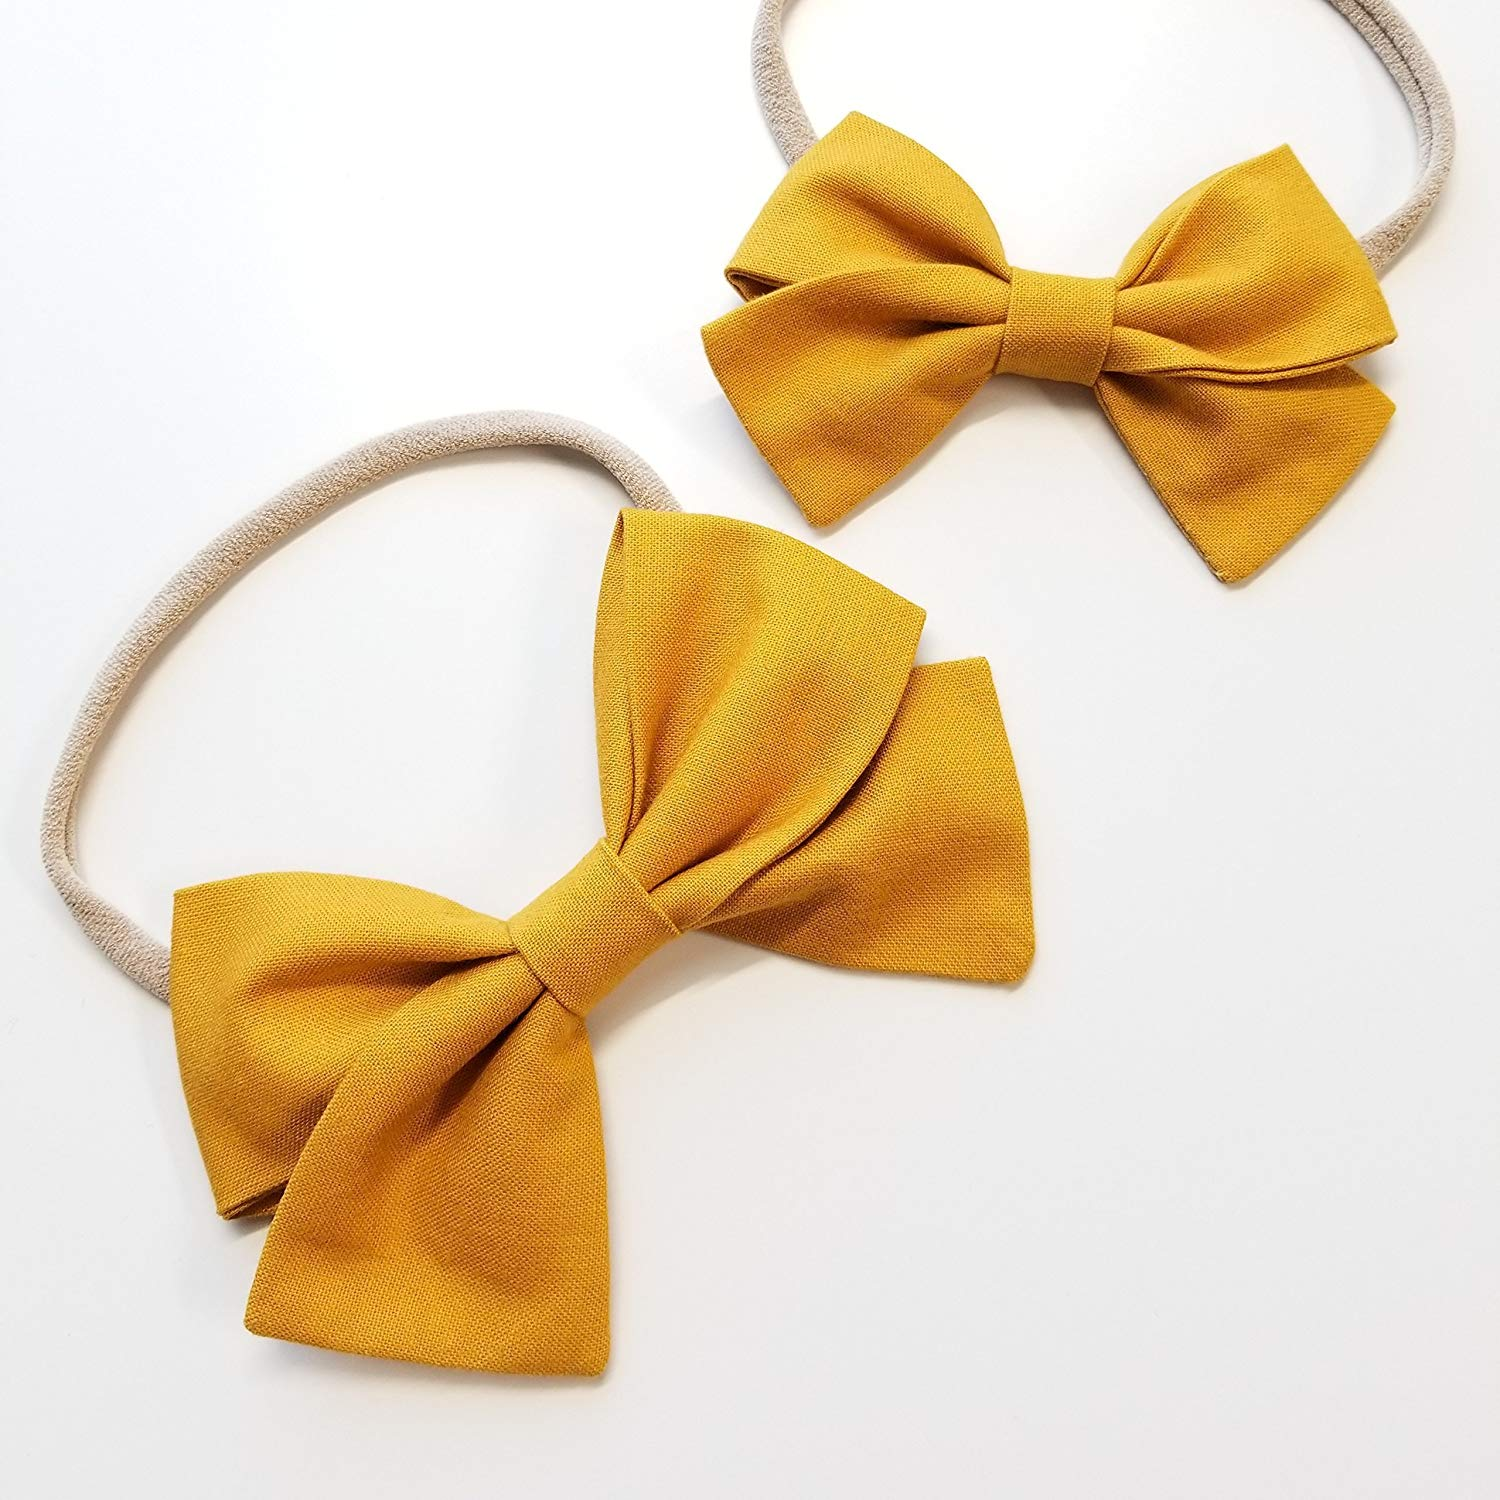 d03a0d49871b Get Quotations · Handmade Baby Girl Bow newborn headband baby bow Alligator  clip Solid Mustard Nylon Headband or Hair